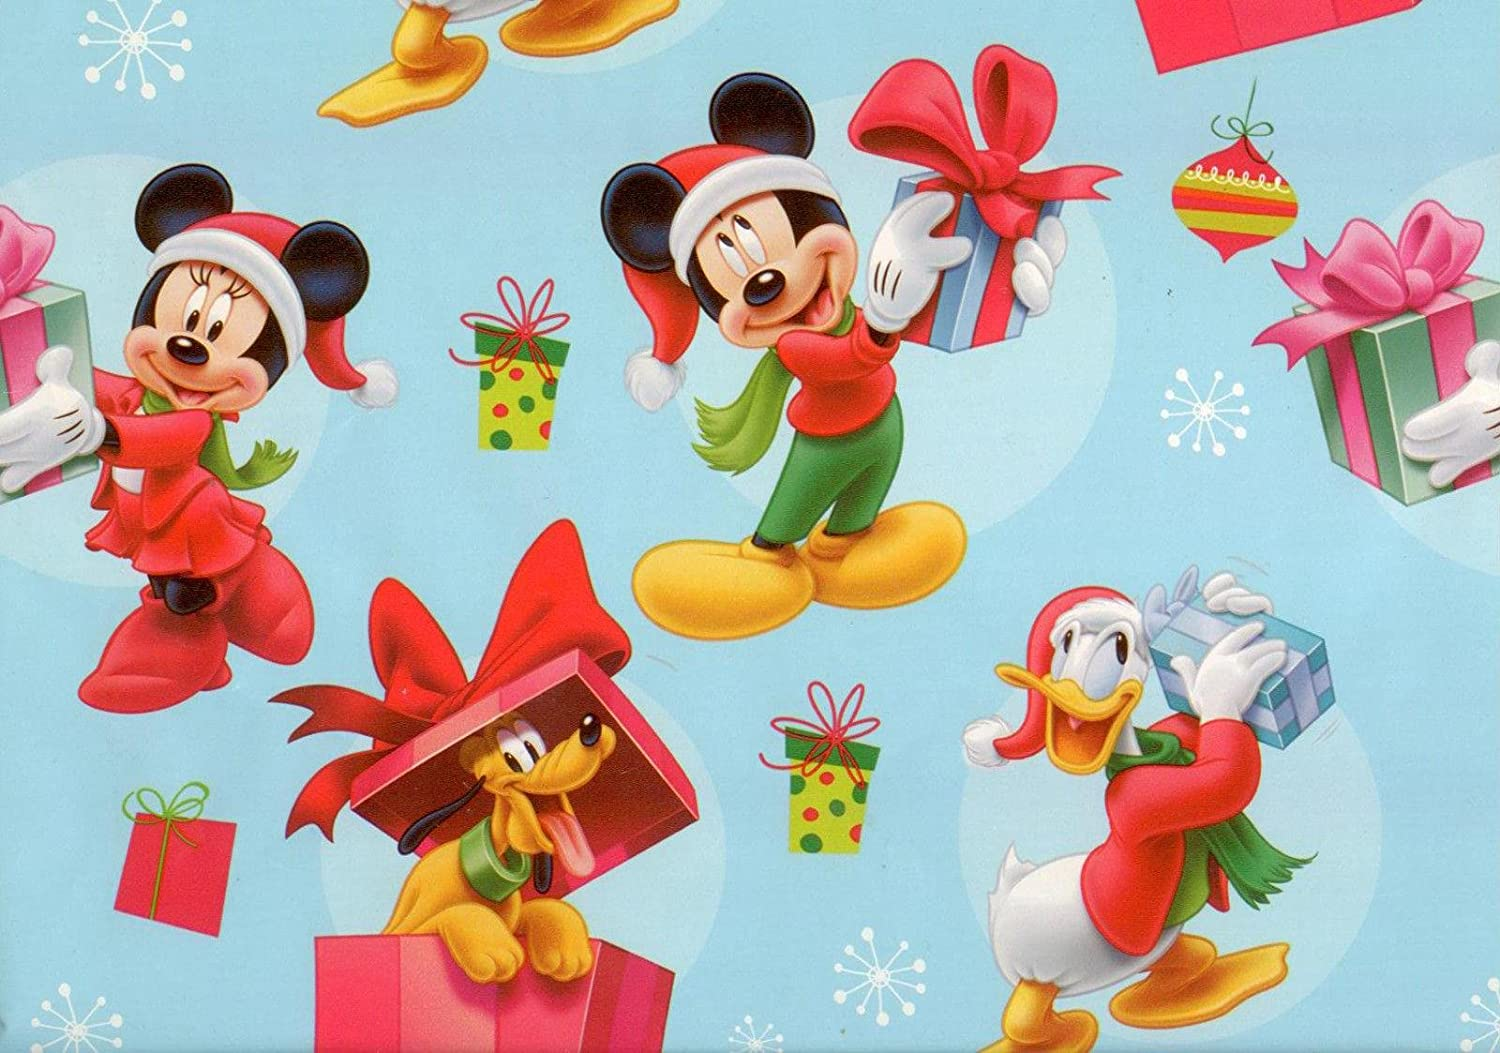 Amazon.com: Disney's Mickey Mouse, Pluto and Donald Duck Christmas ...